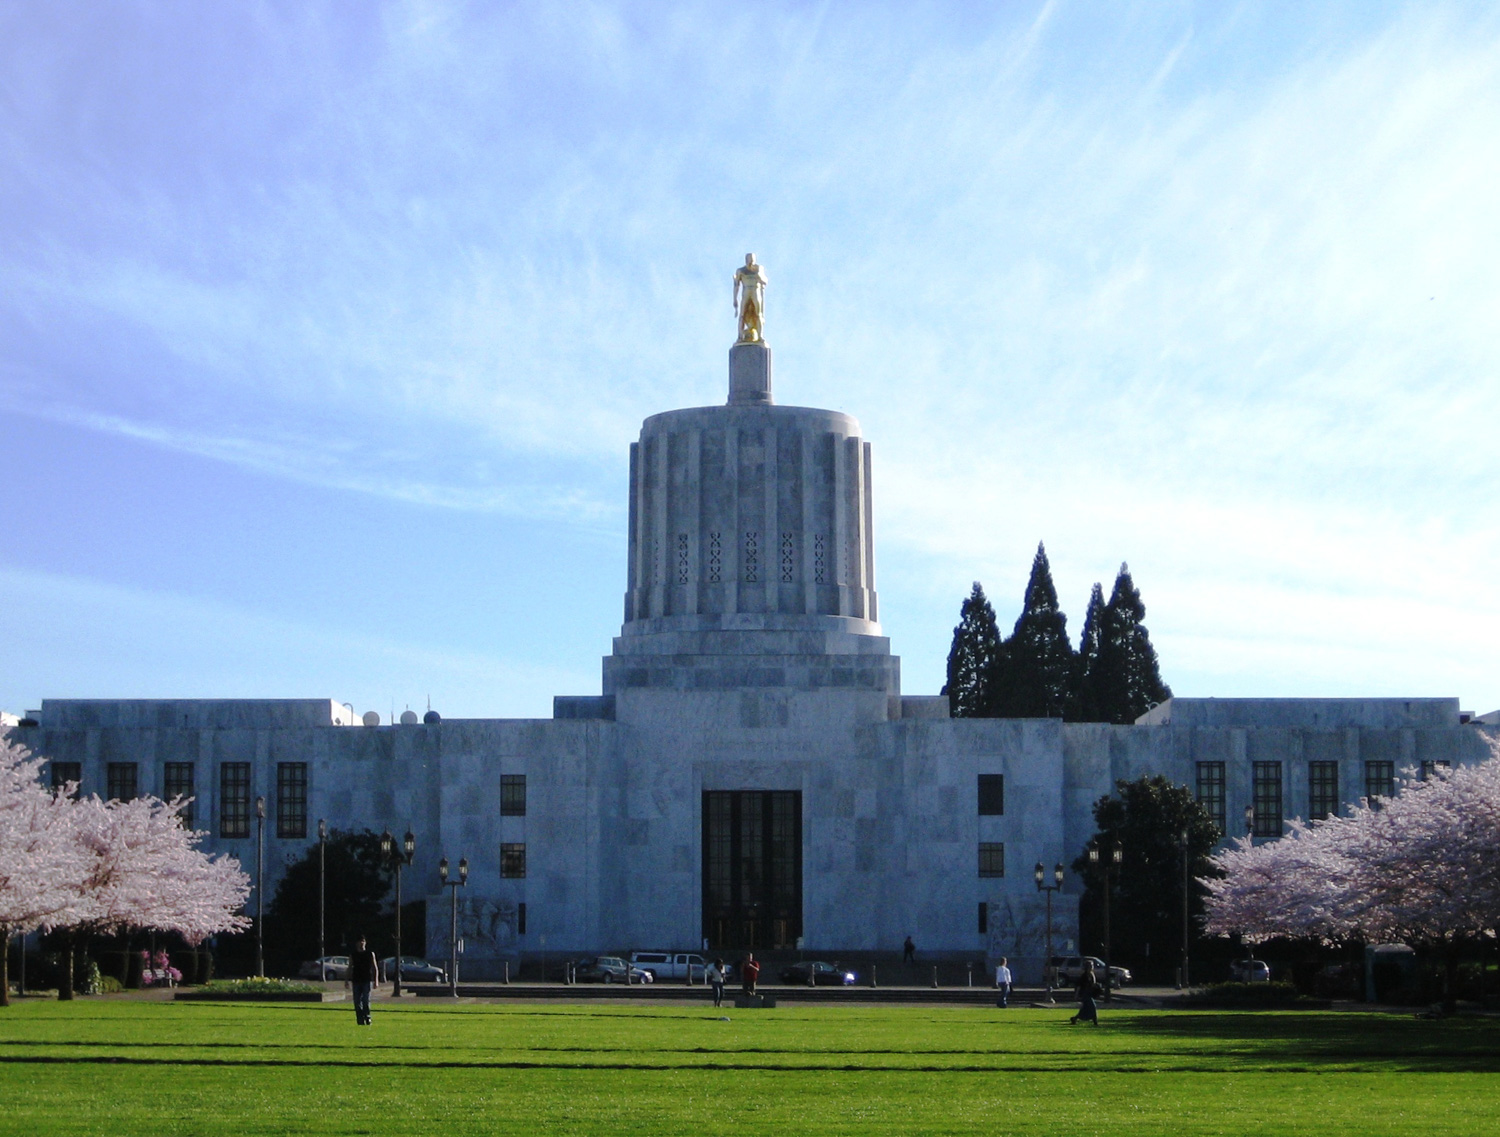 Front exterior of the Oregon State Capitol building in Salem, Oregon, United States.